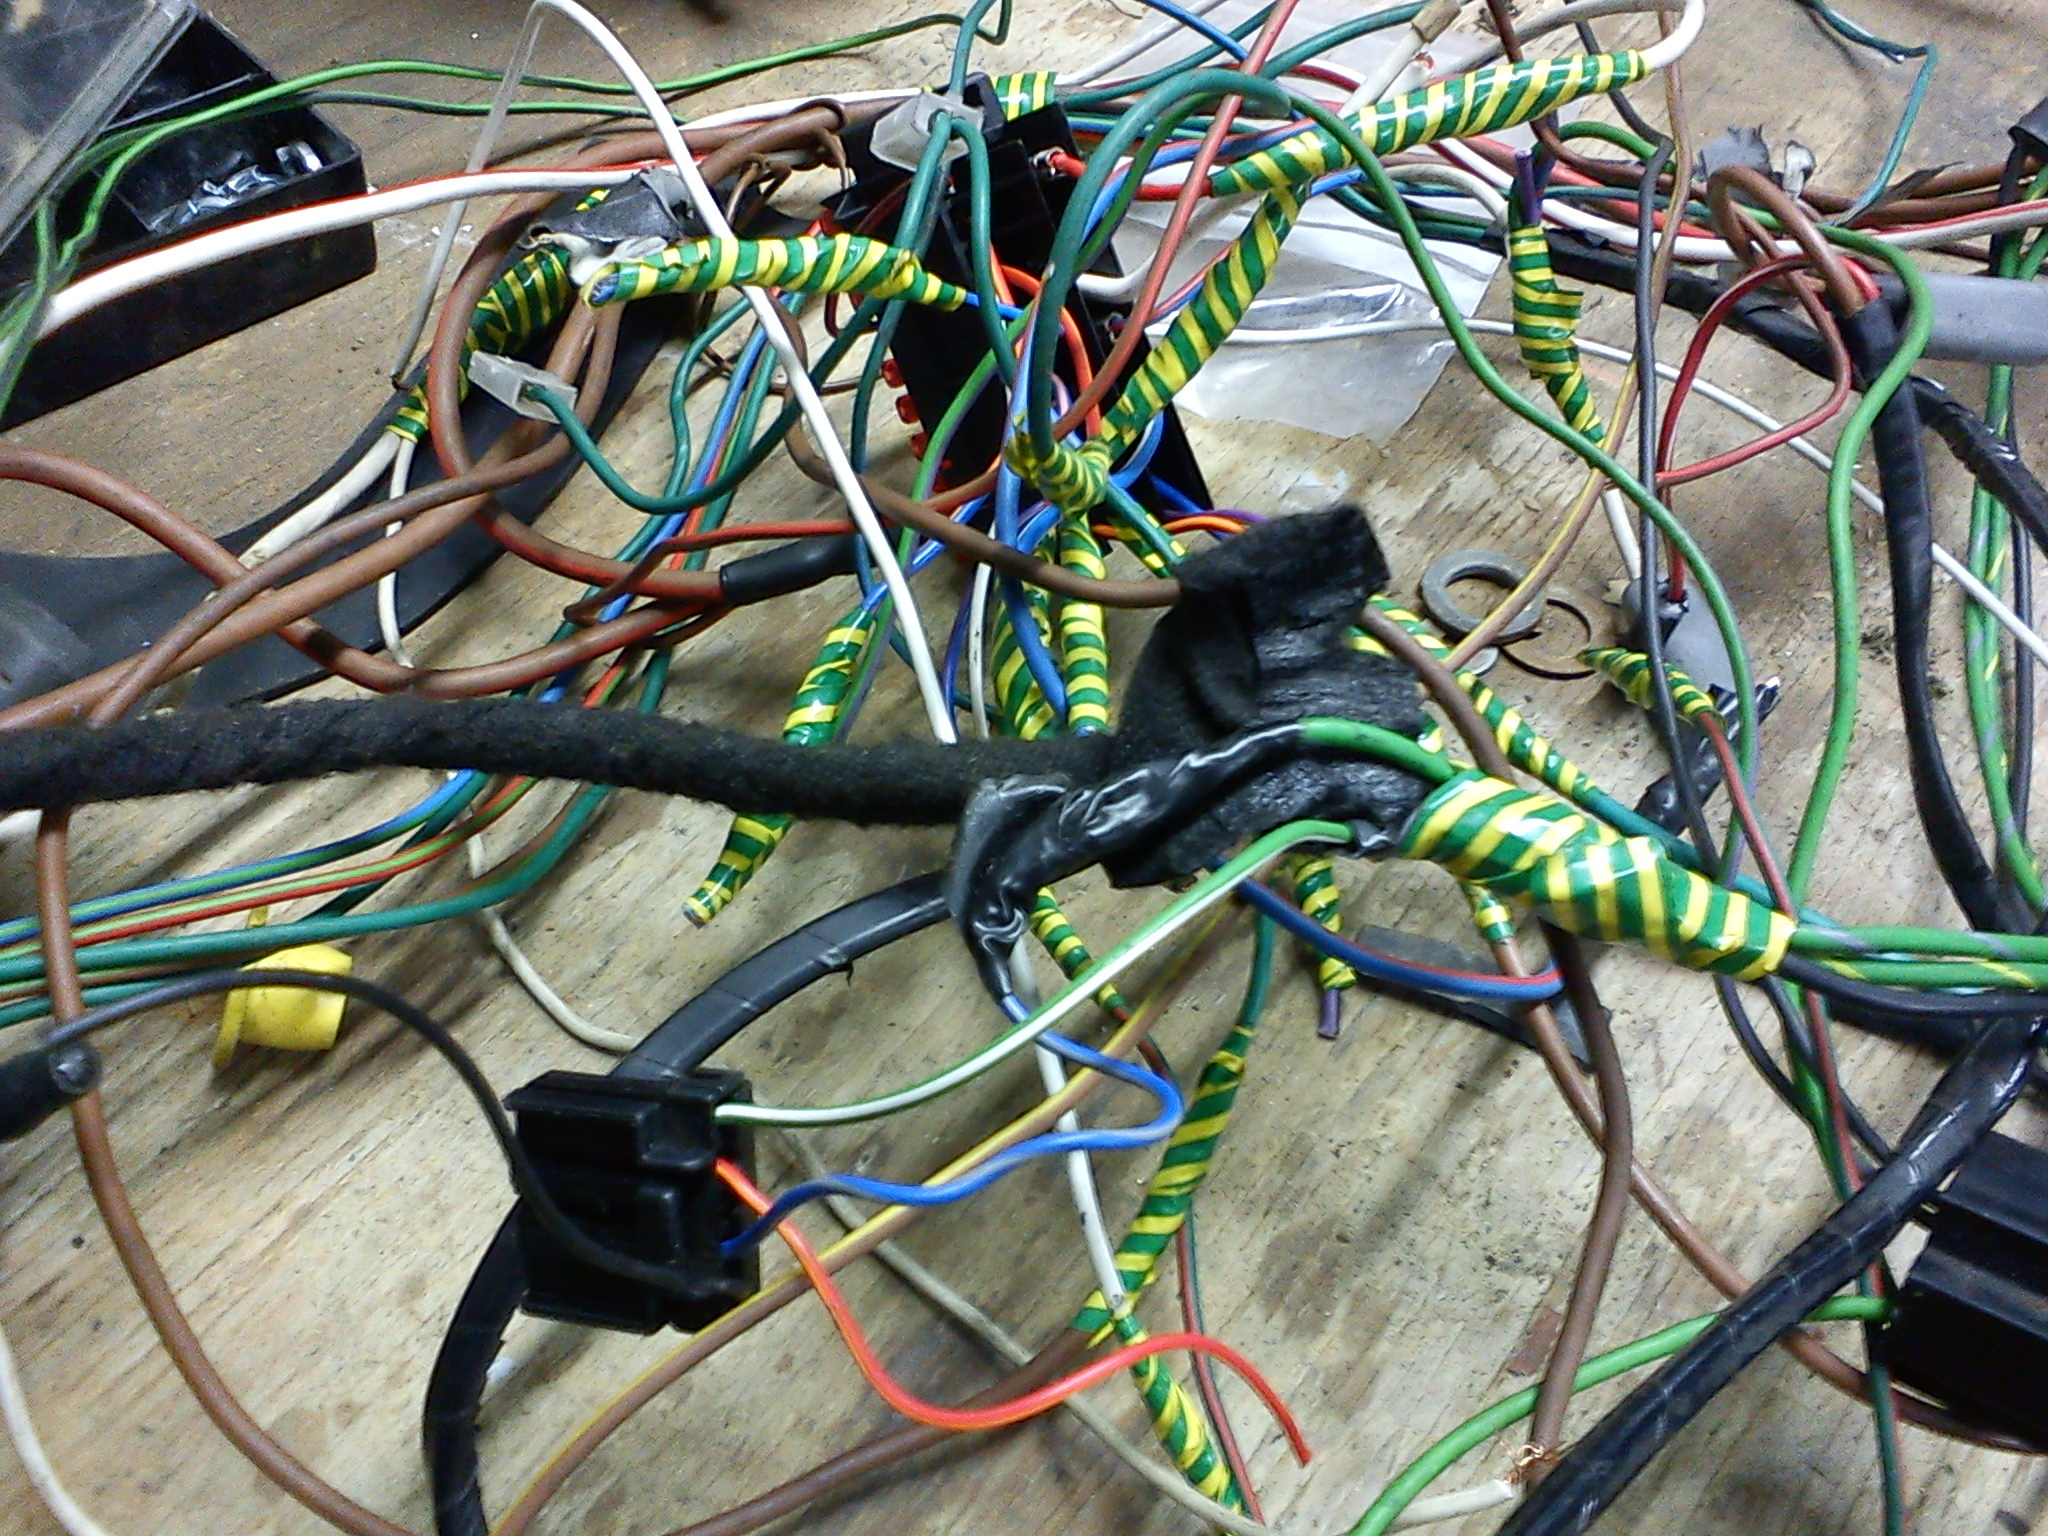 'New' Landrover wiring loom